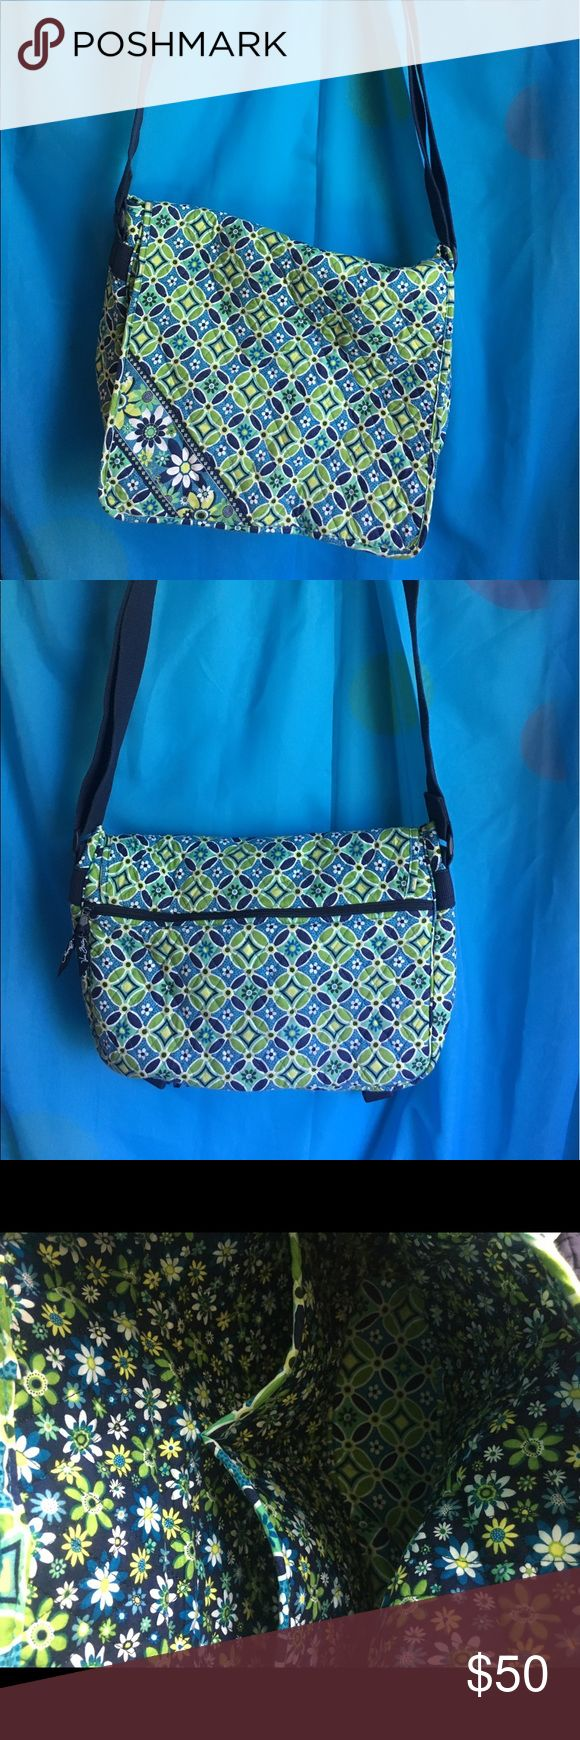 Vera Bradley laptop bag Vera Bradley laptop bag! Blue/green/white design. Adjustable shoulder strap with rubber shoulder pad. Big zipper opening on back. Flap clips shut with two plastic clips. 3 small pockets inside bag. In great condition! Vera Bradley Bags Laptop Bags